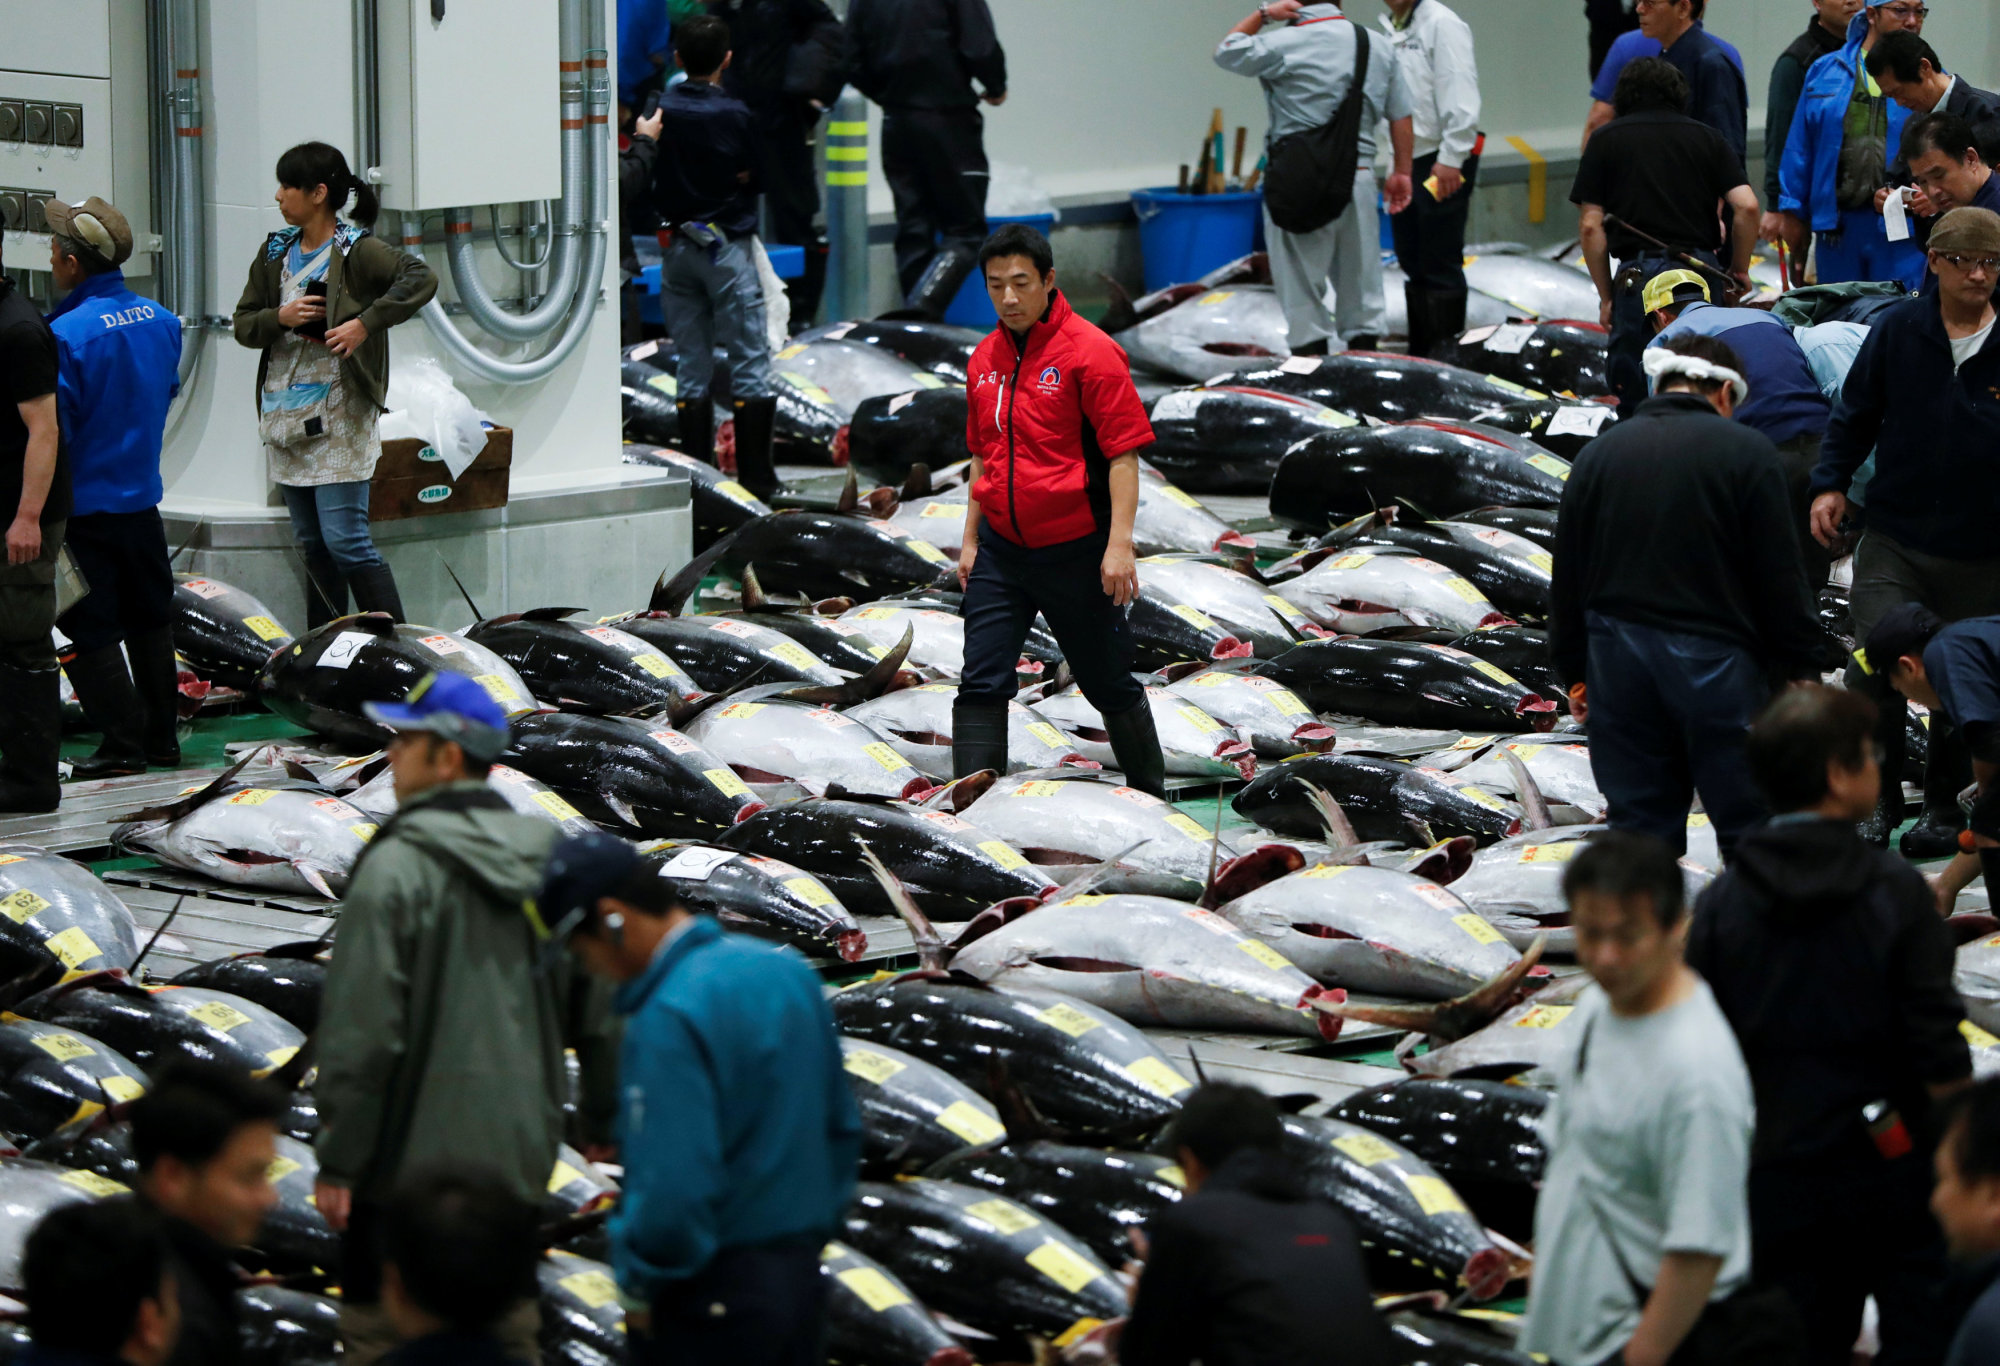 Wholesalers check the quality of frozen tuna displayed during the first tuna auctions on the opening day of the new market, which recently opened in Toyosu, not far from the old site at Tsukiji, in central Tokyo, on Oct. 11. | REUTERS